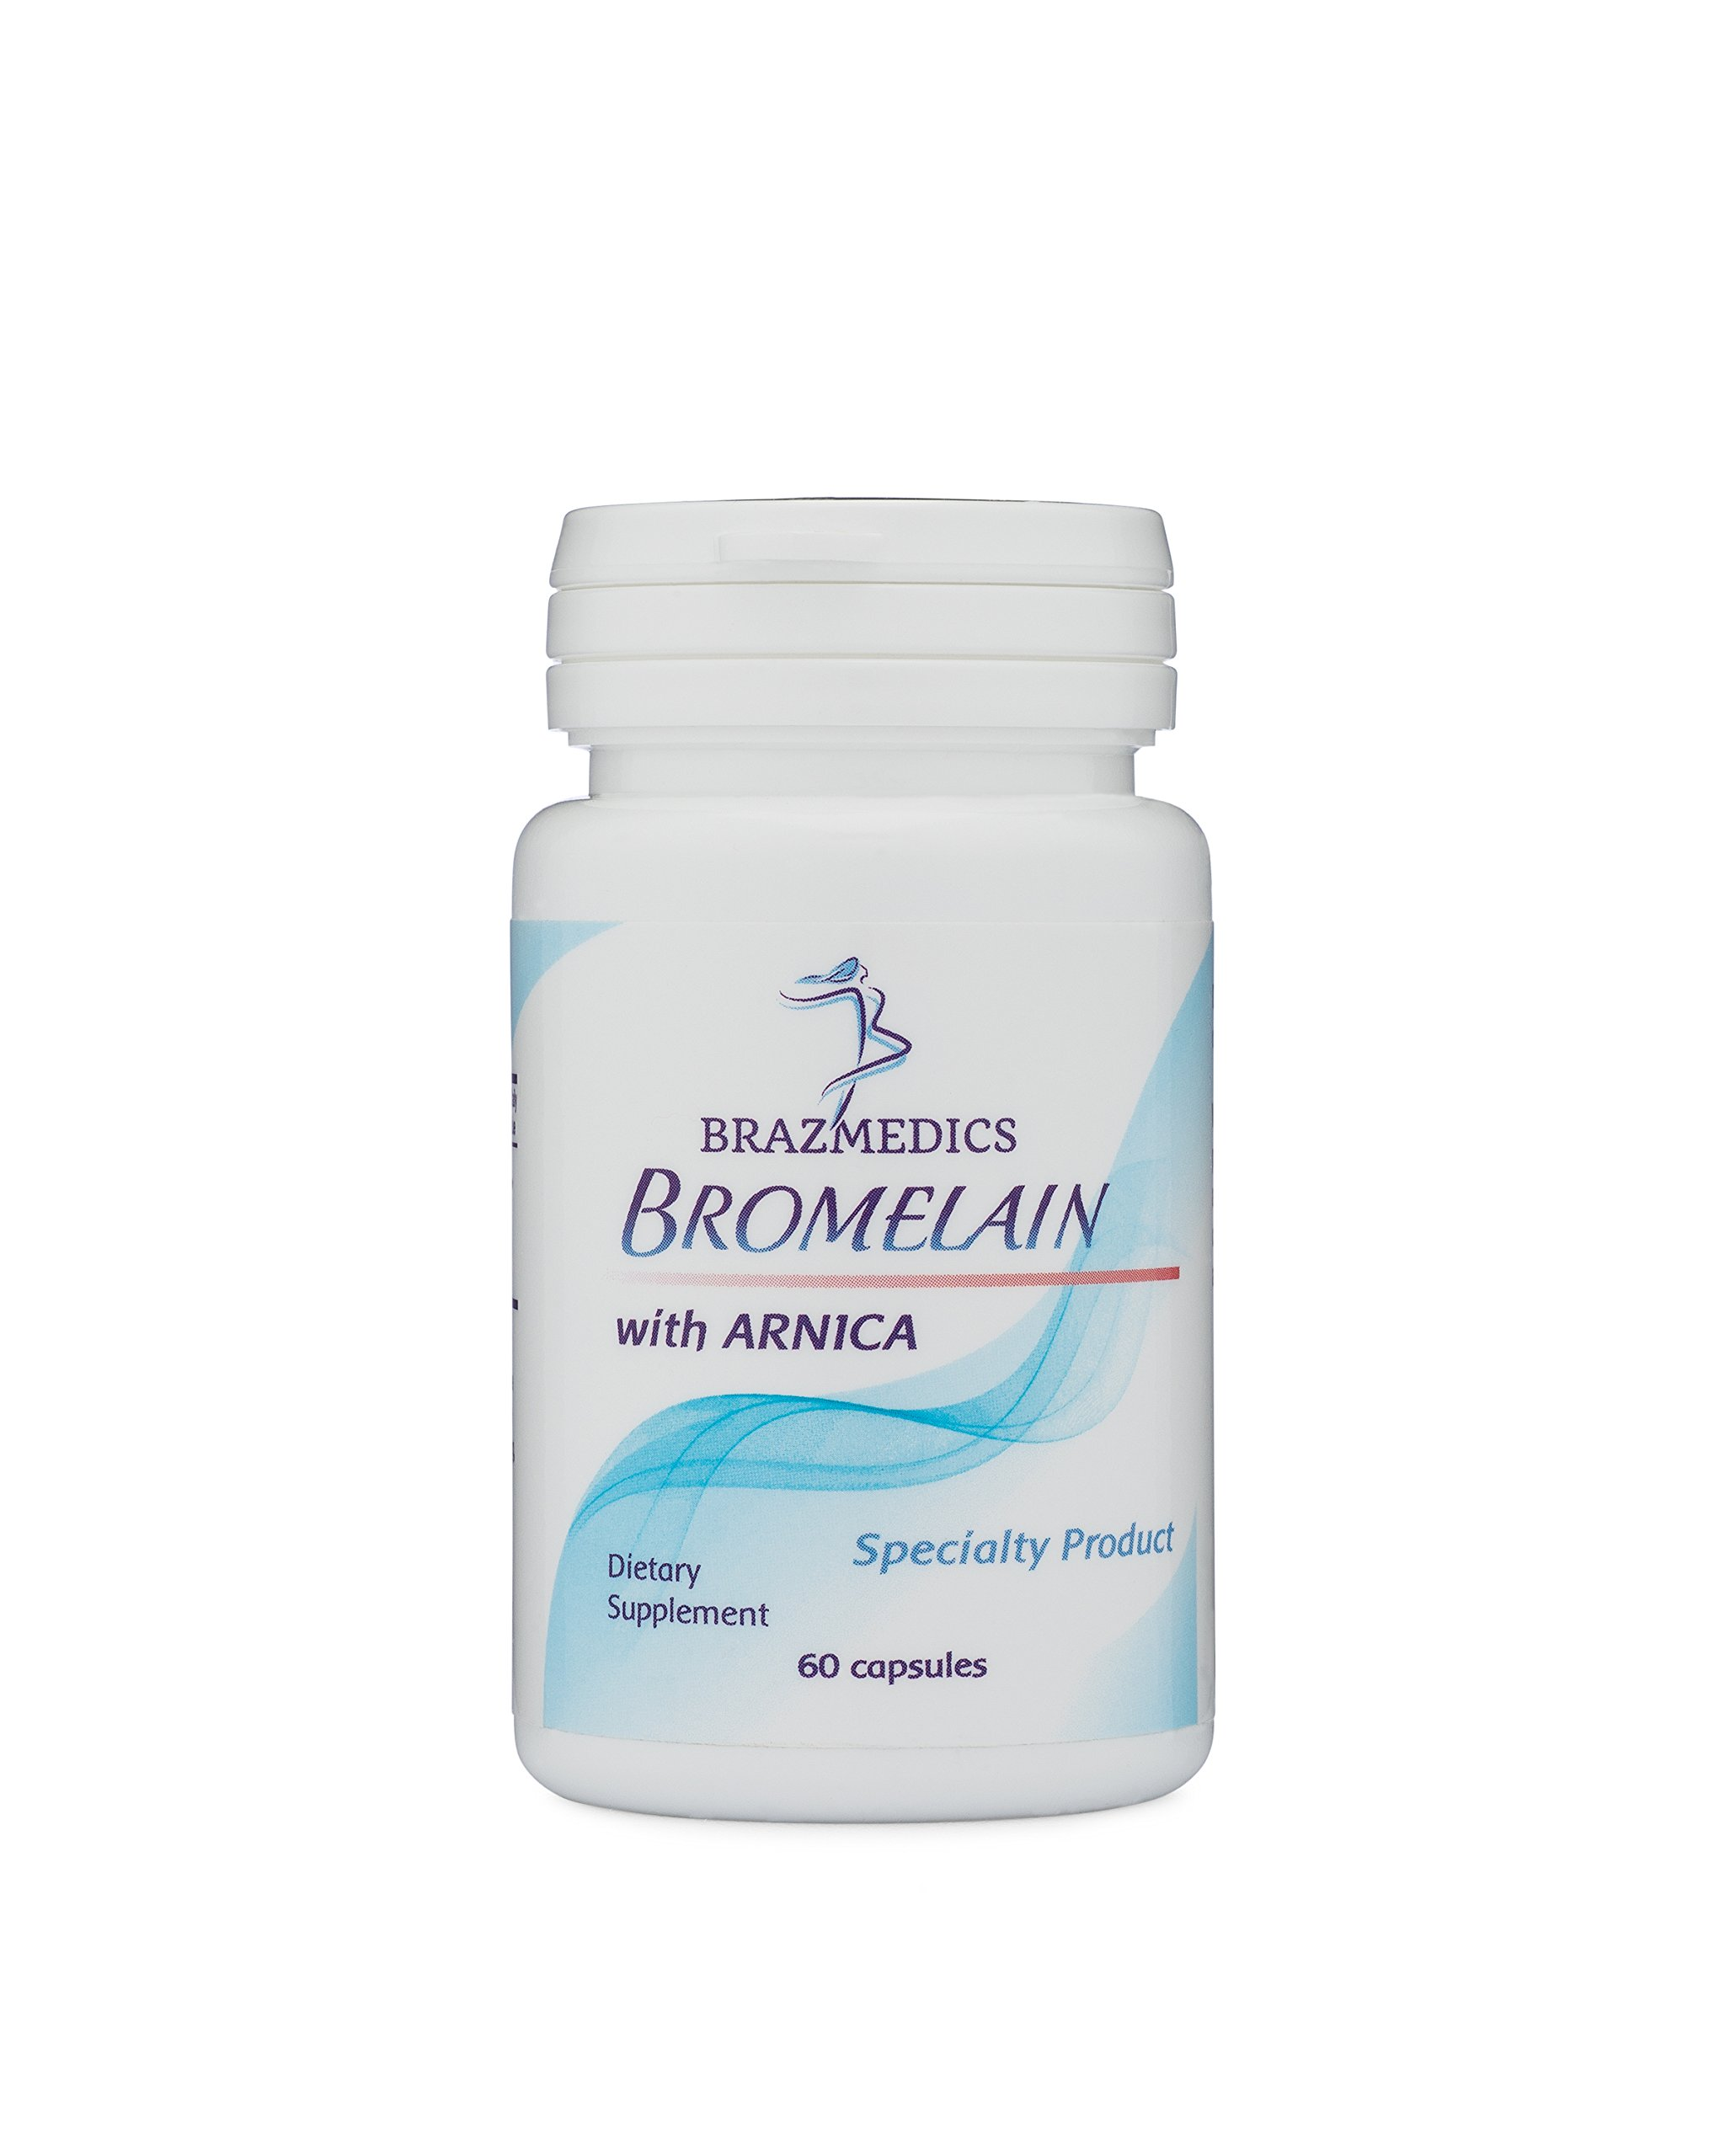 Brazmedics Bromelain with Arnica Tablets, 500 mg/2400 GDU, 60 Capsules, Natural Dietary Supplement